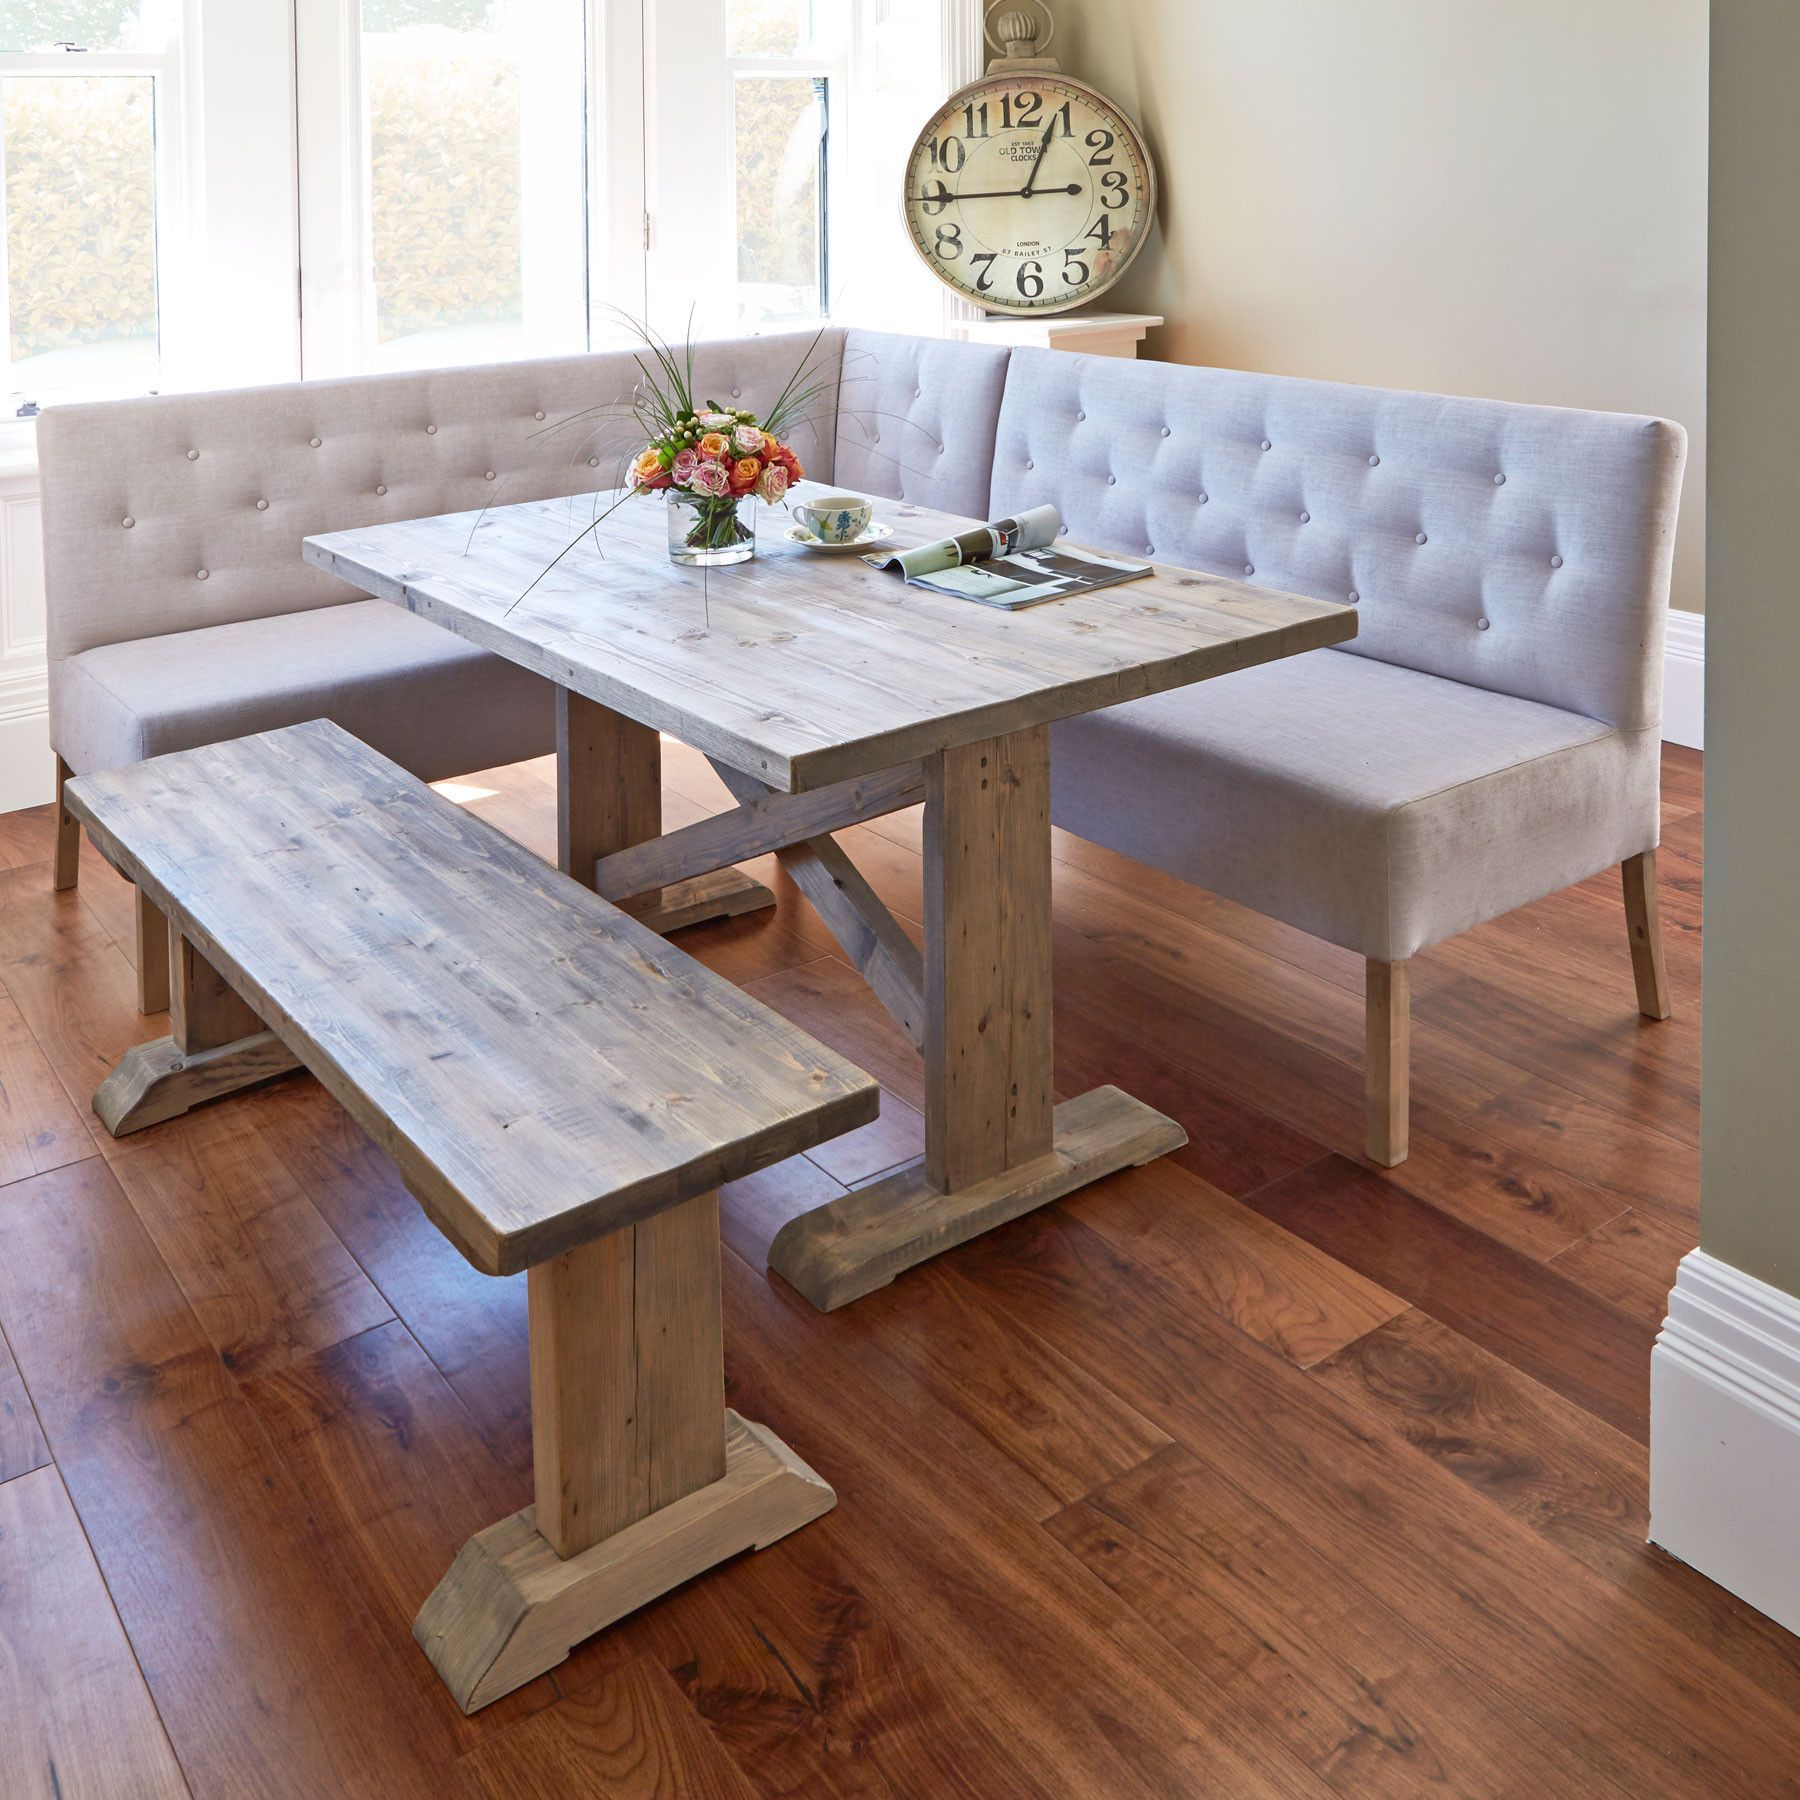 35 Best Small Kitchen Table Pictures Ideas Amp Designs